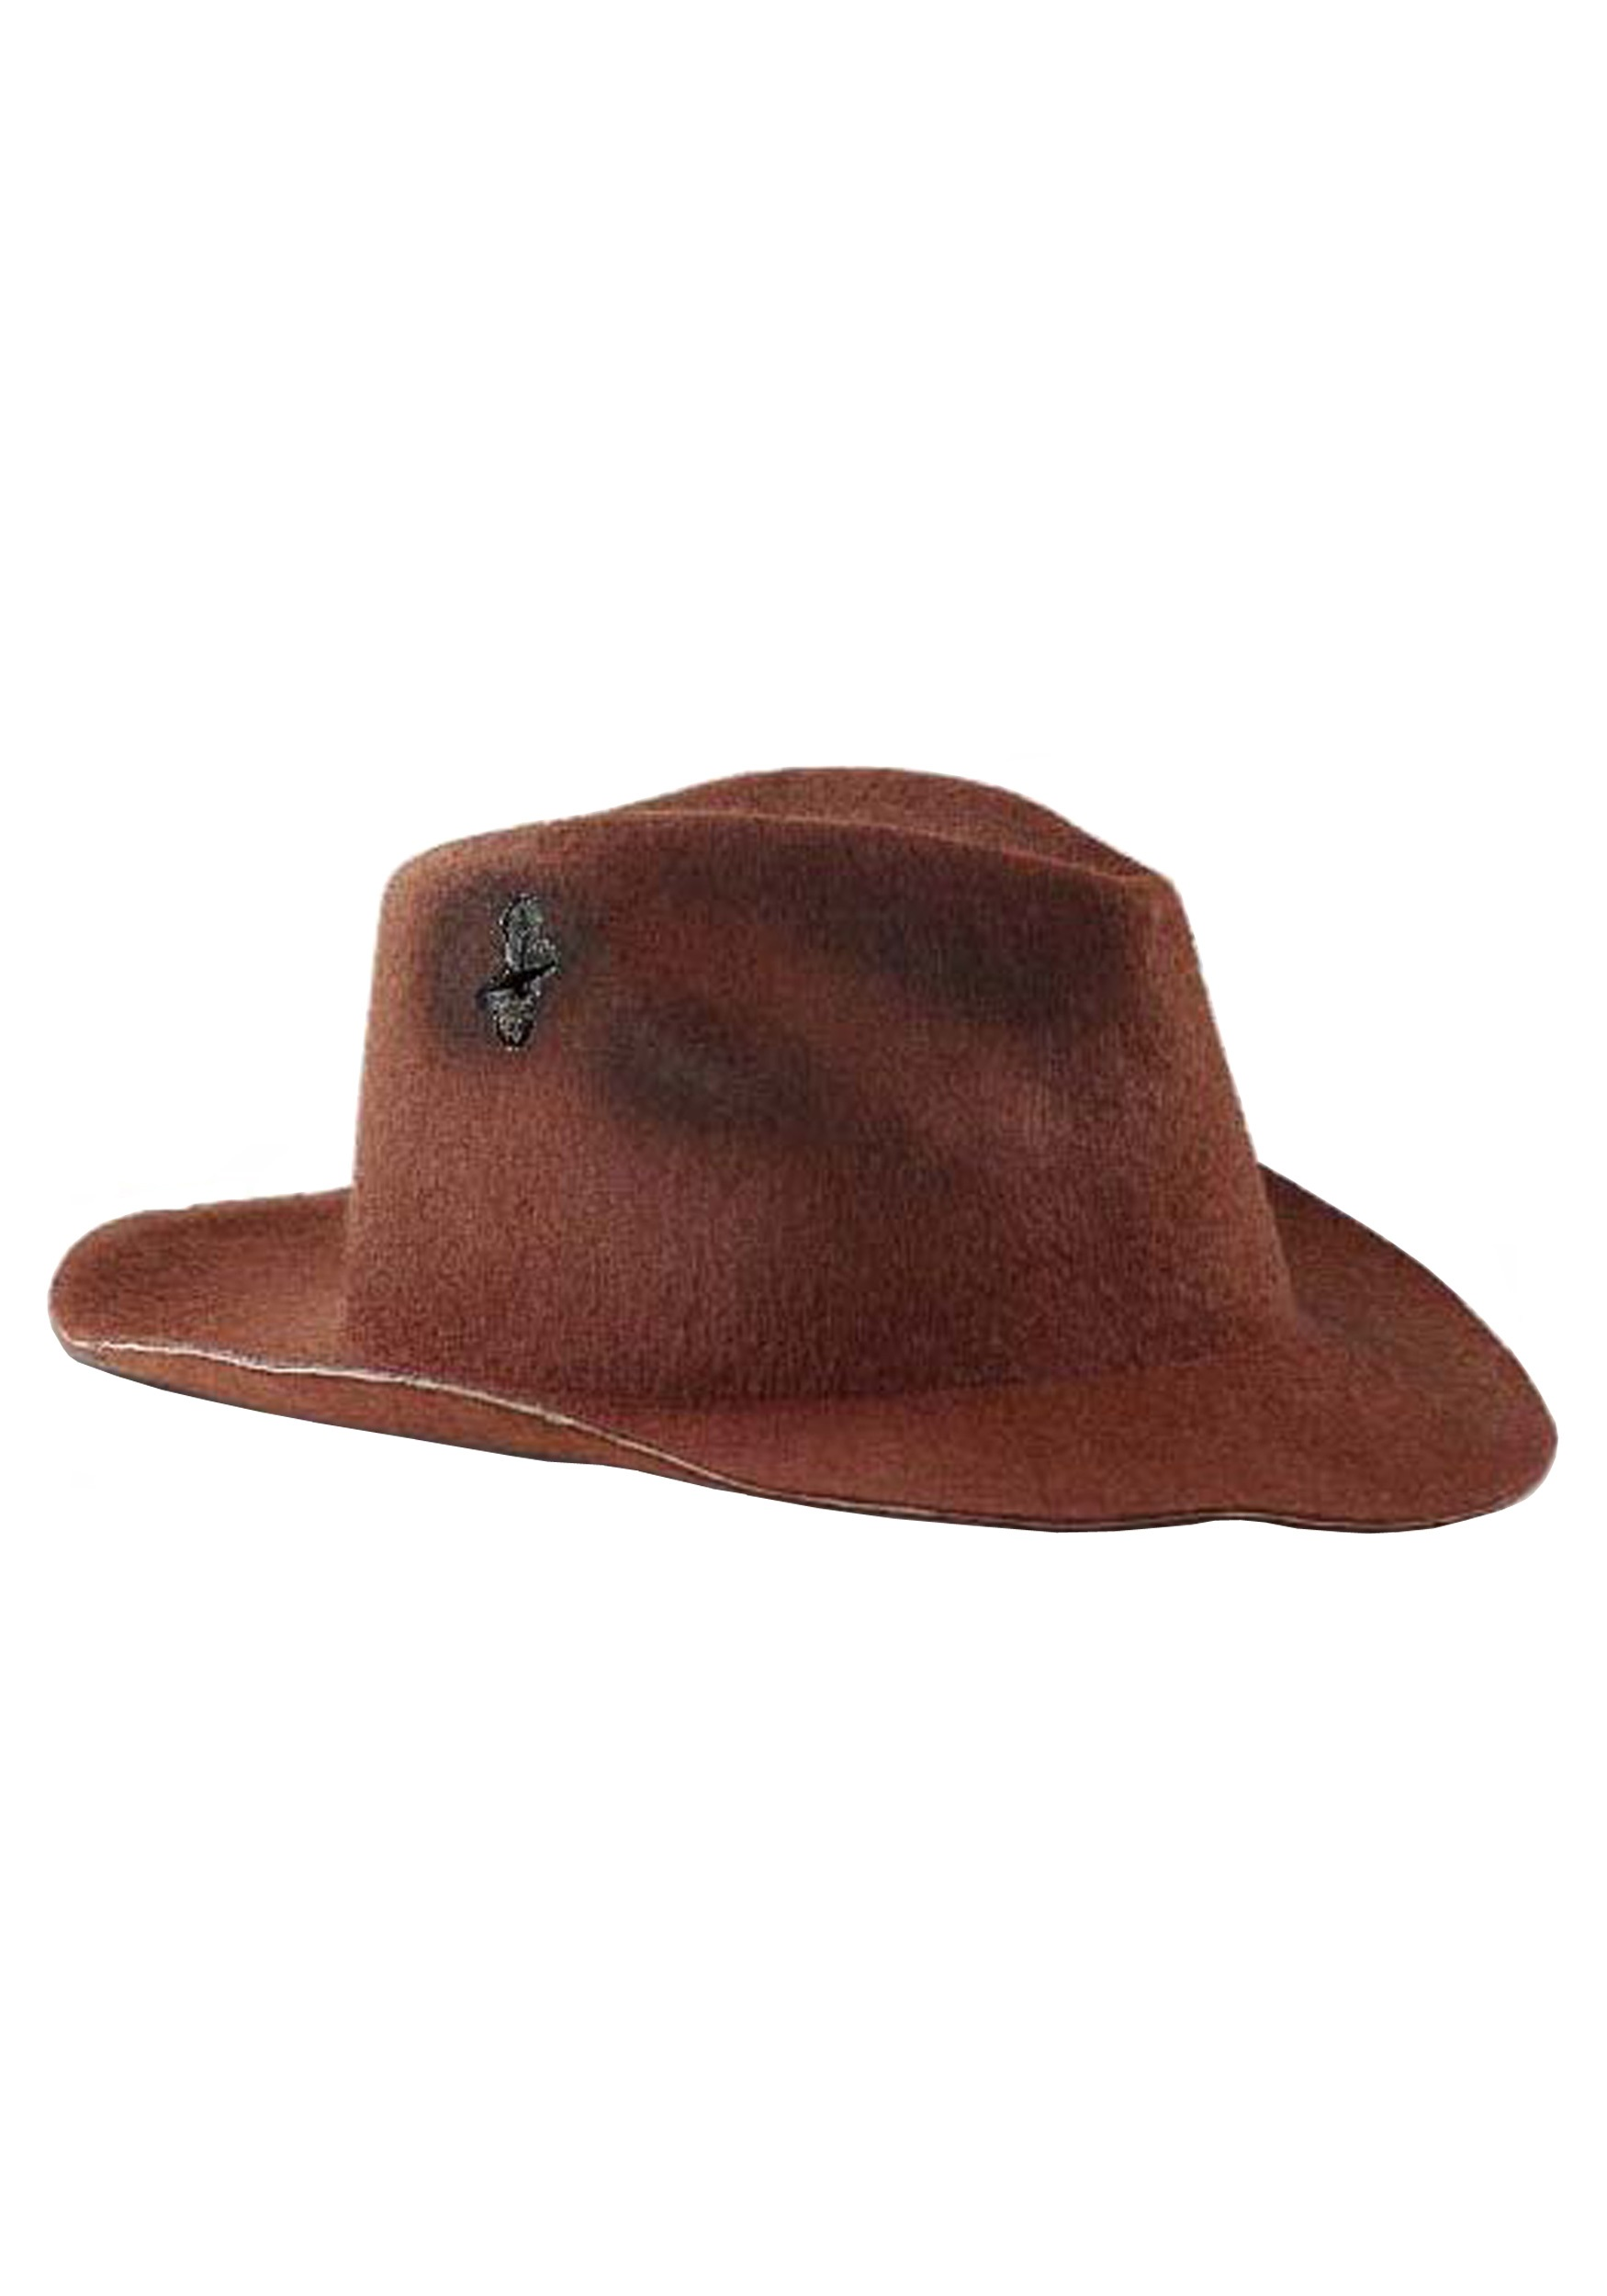 freddy krueger teen fedora - halloween costumes